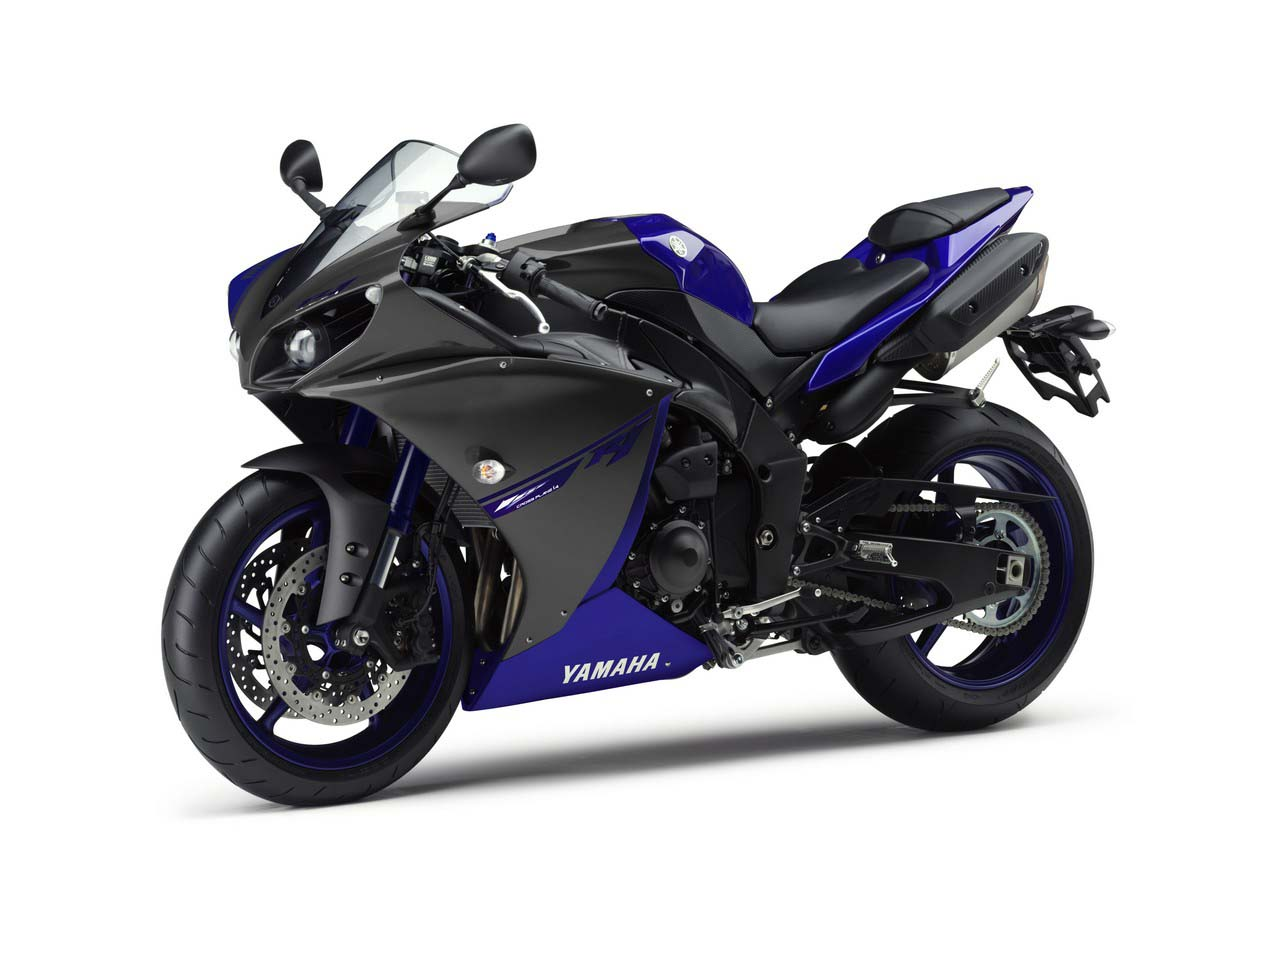 yamaha r6 black 2014 - photo #40